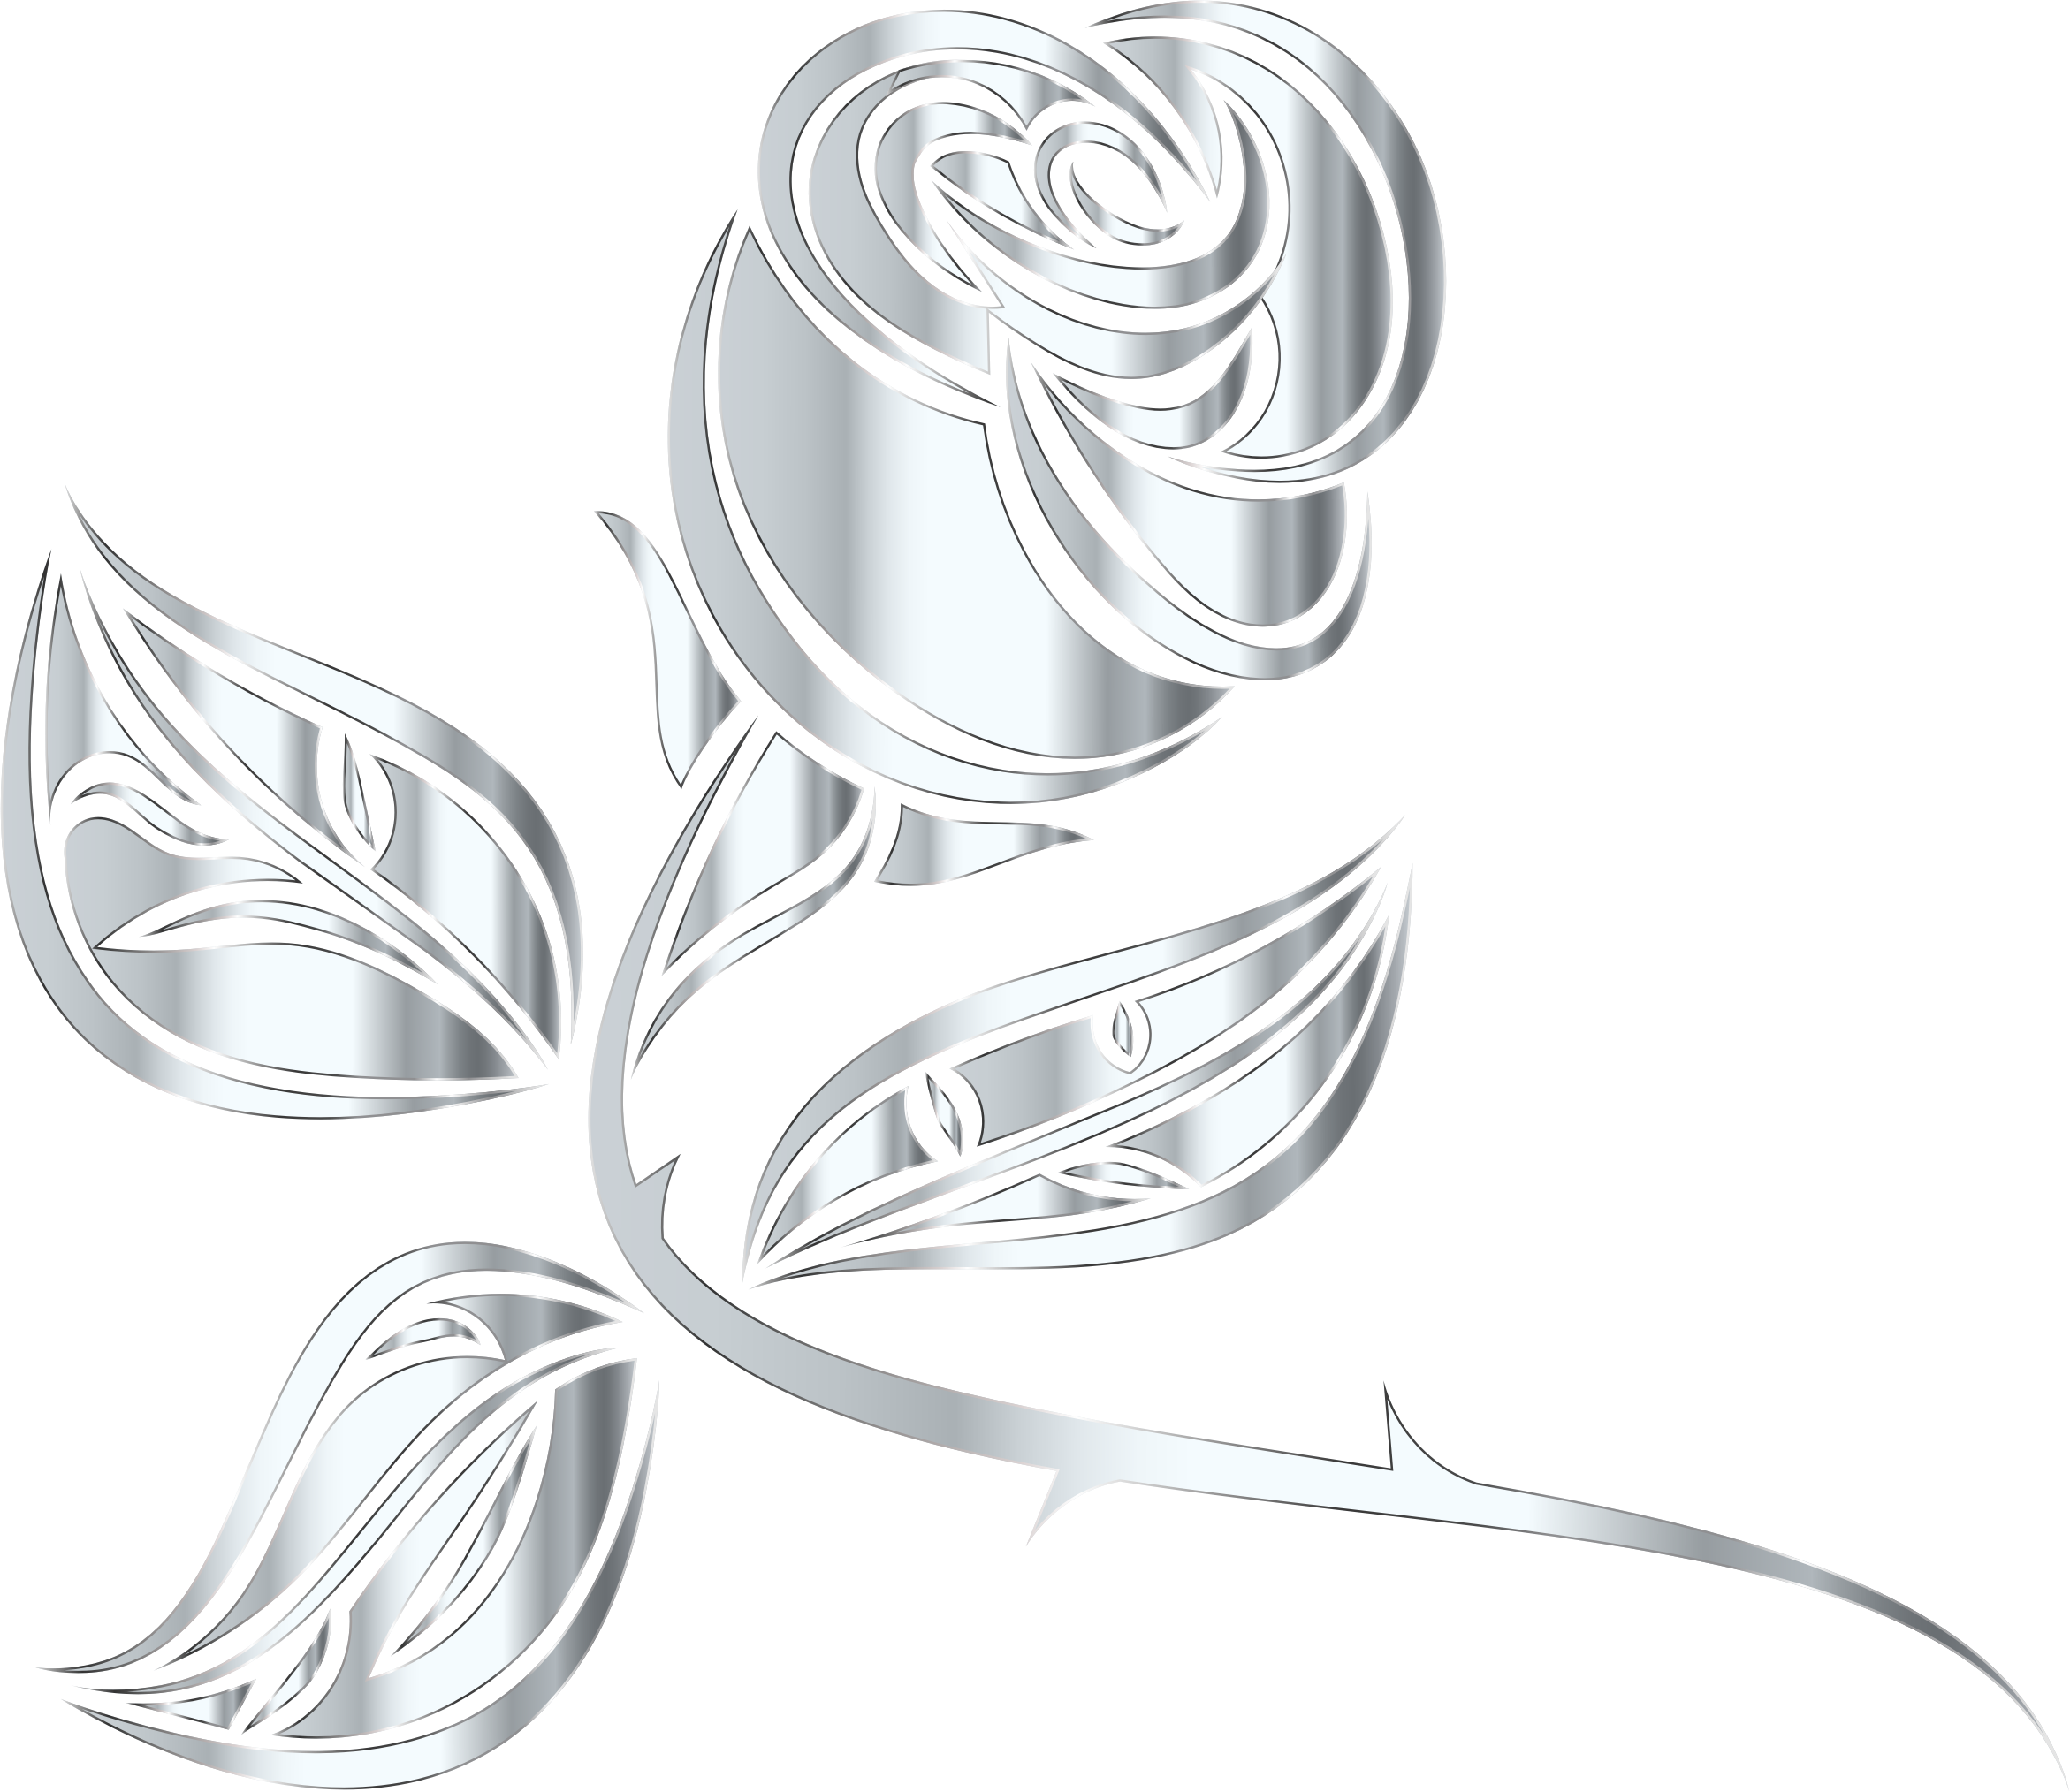 Stylized Rose Extended 7 Minus Background by GDJ